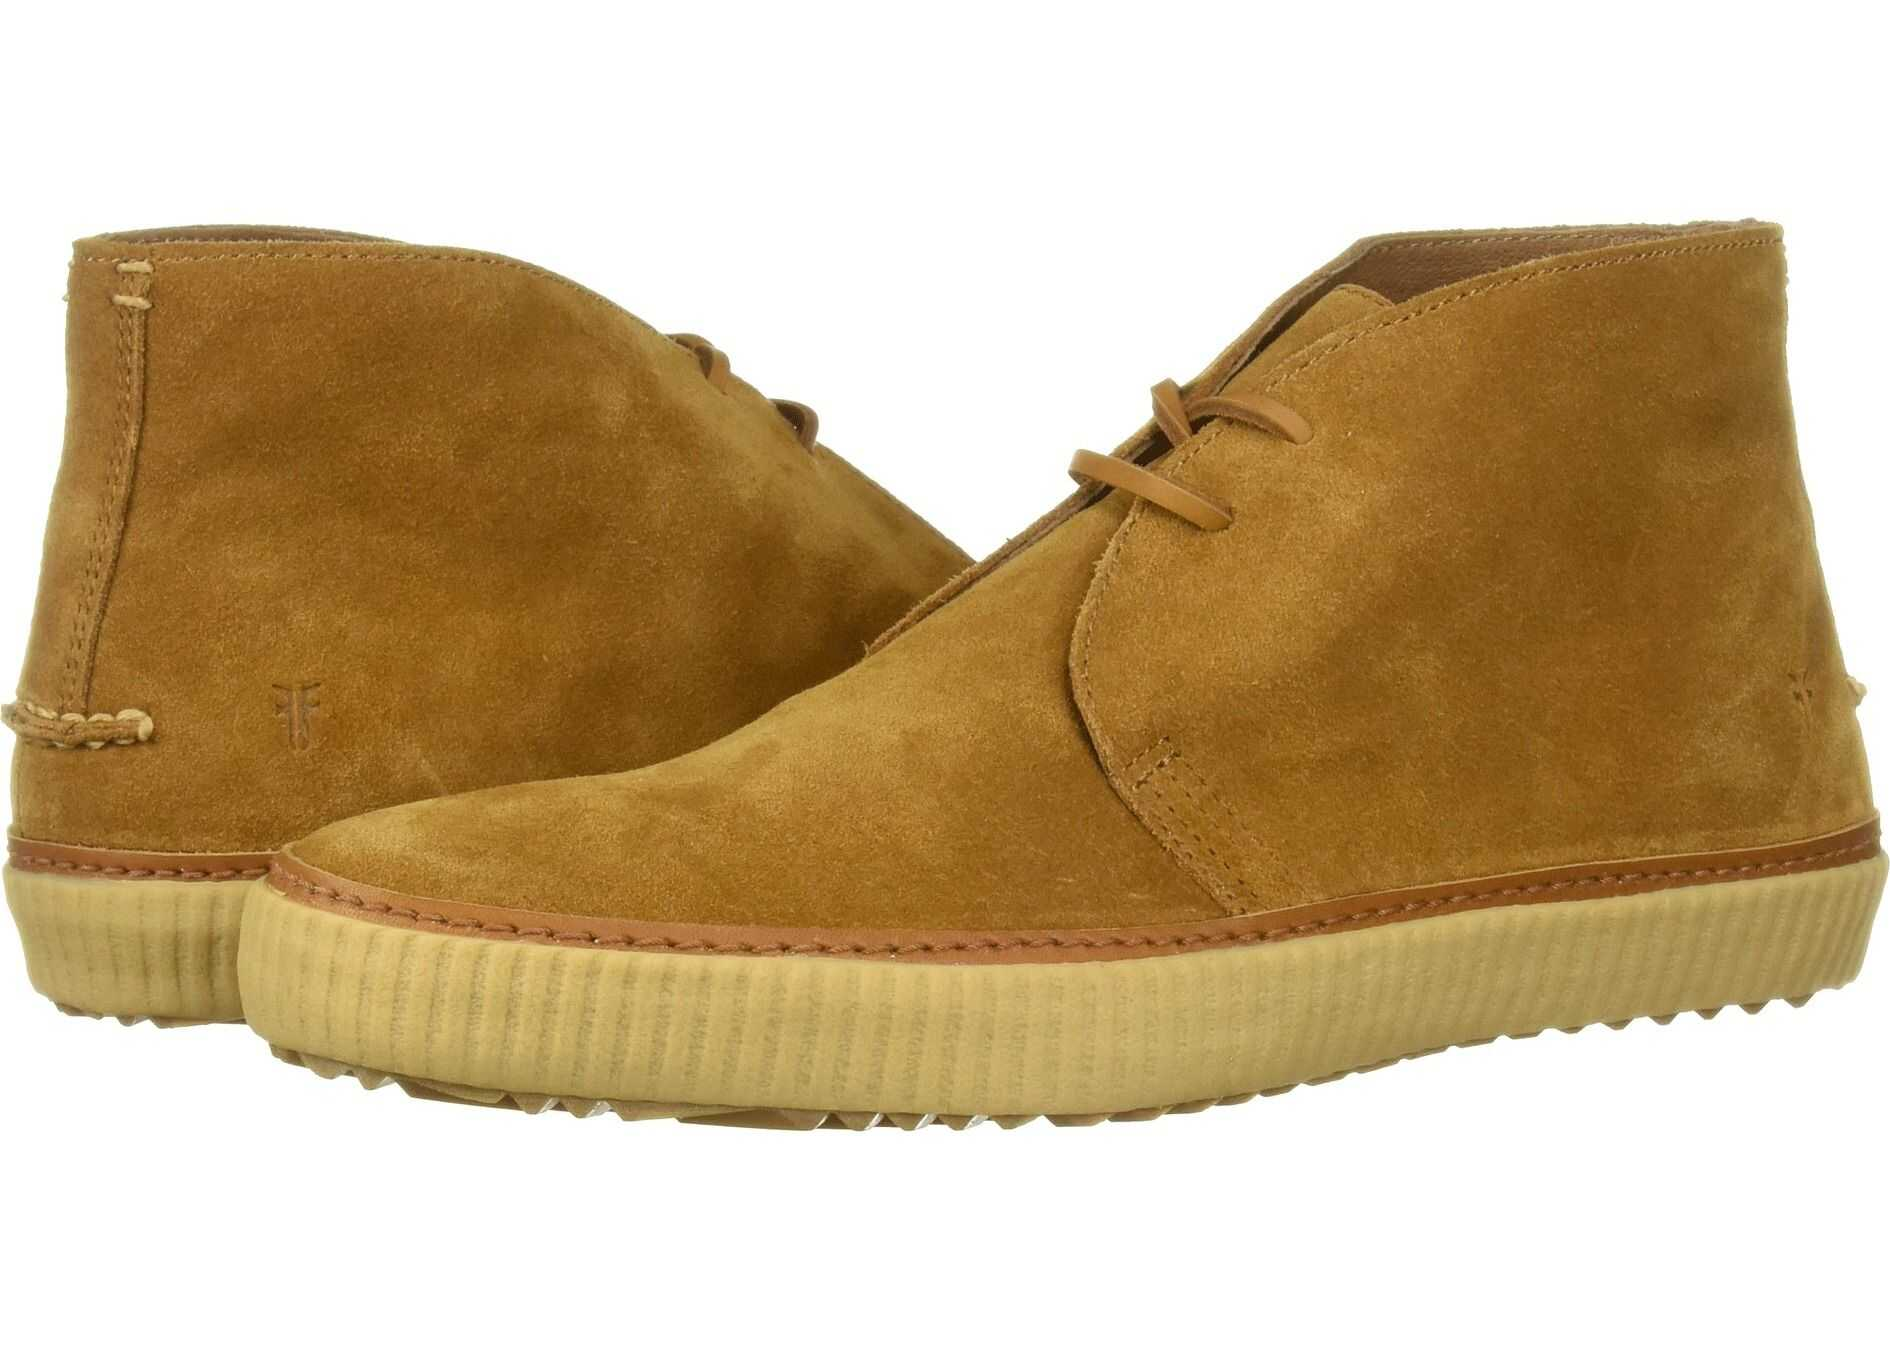 Frye Emory Chukka Wheat Washed Waxed Suede